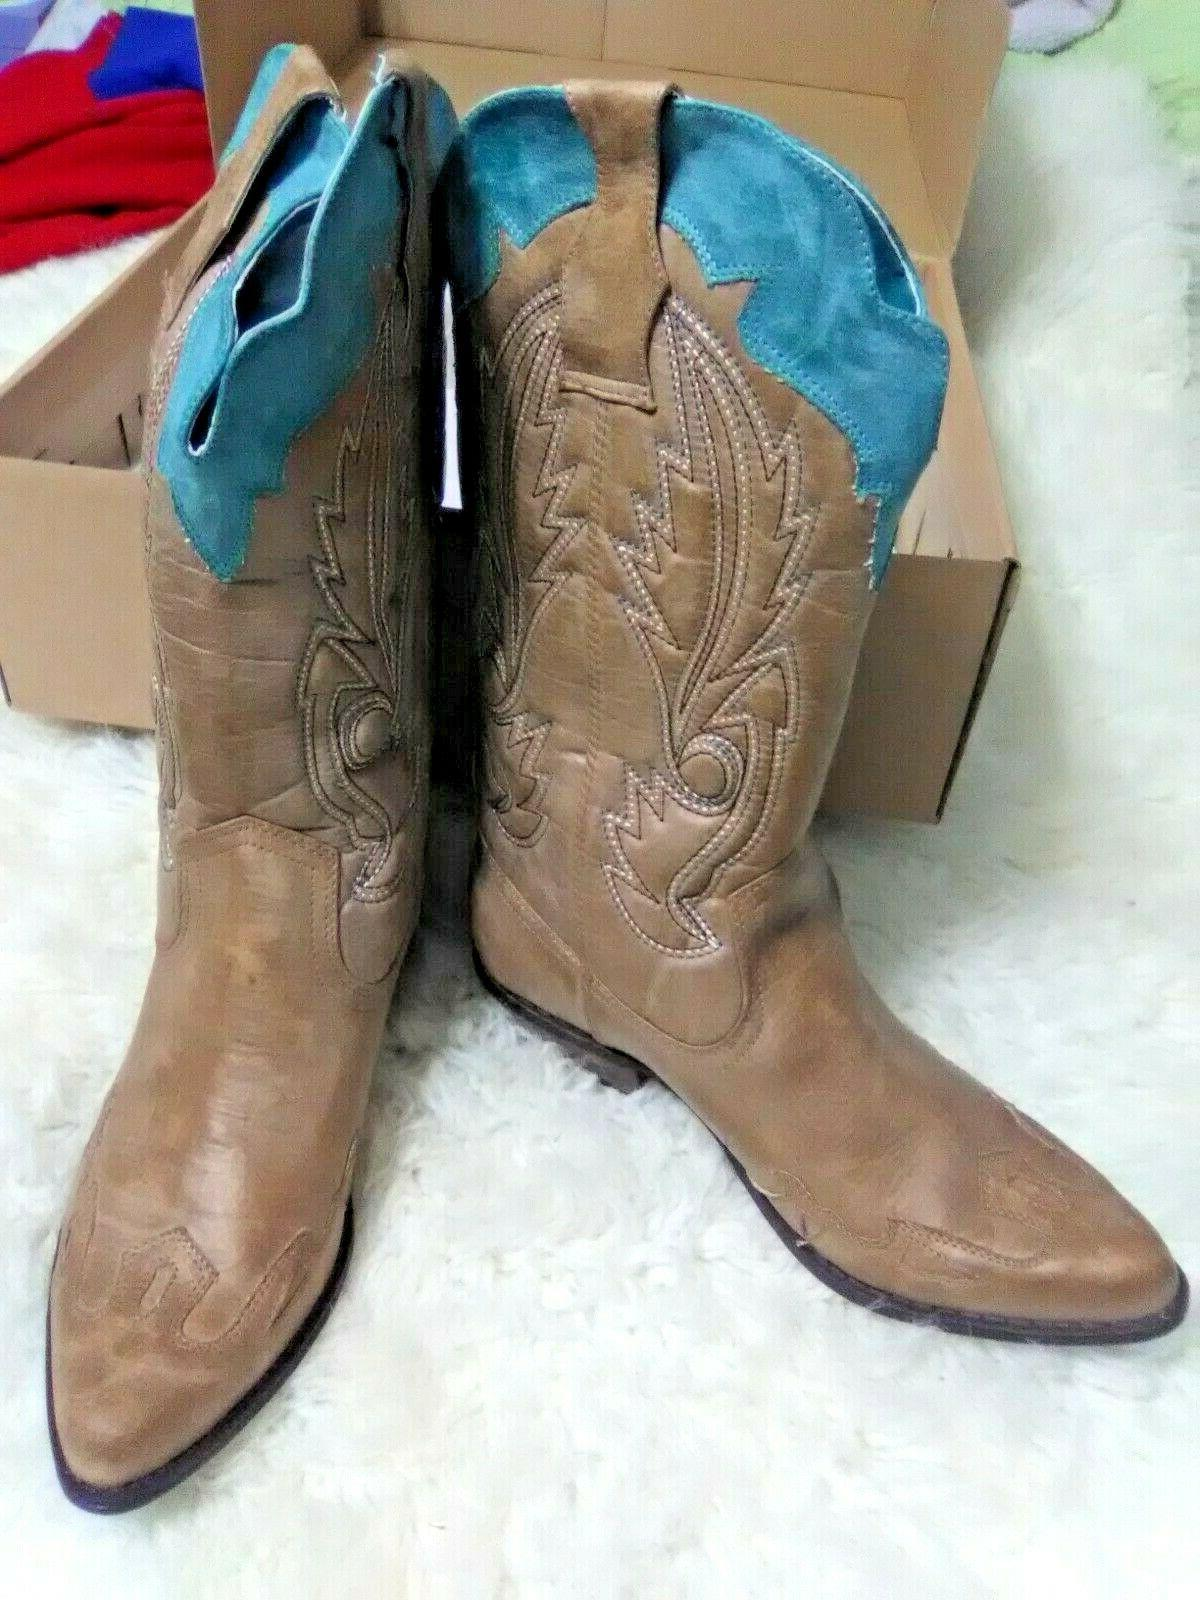 bc0588aaa34 Women's Tan & Turquoise Cowboy Boots COCONUTS